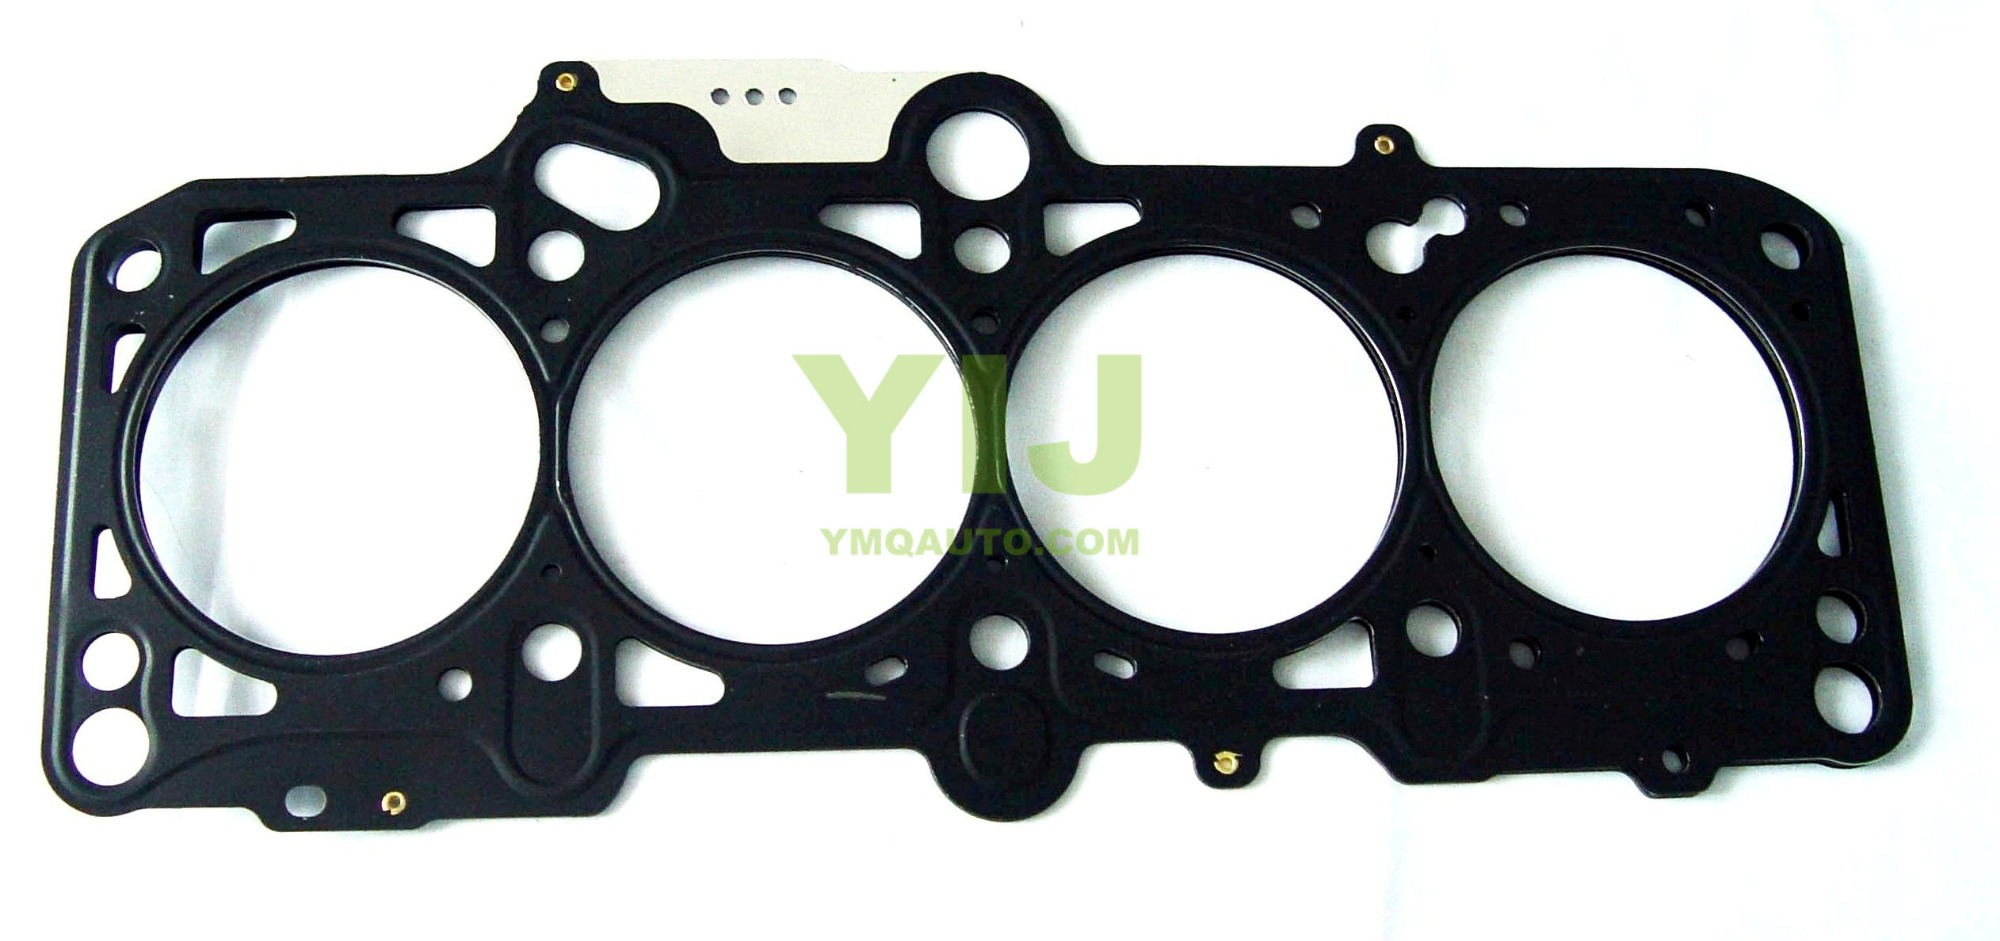 Cylinder Head Gasket 06A103383AL for the 2.0 Engines for Audi VW